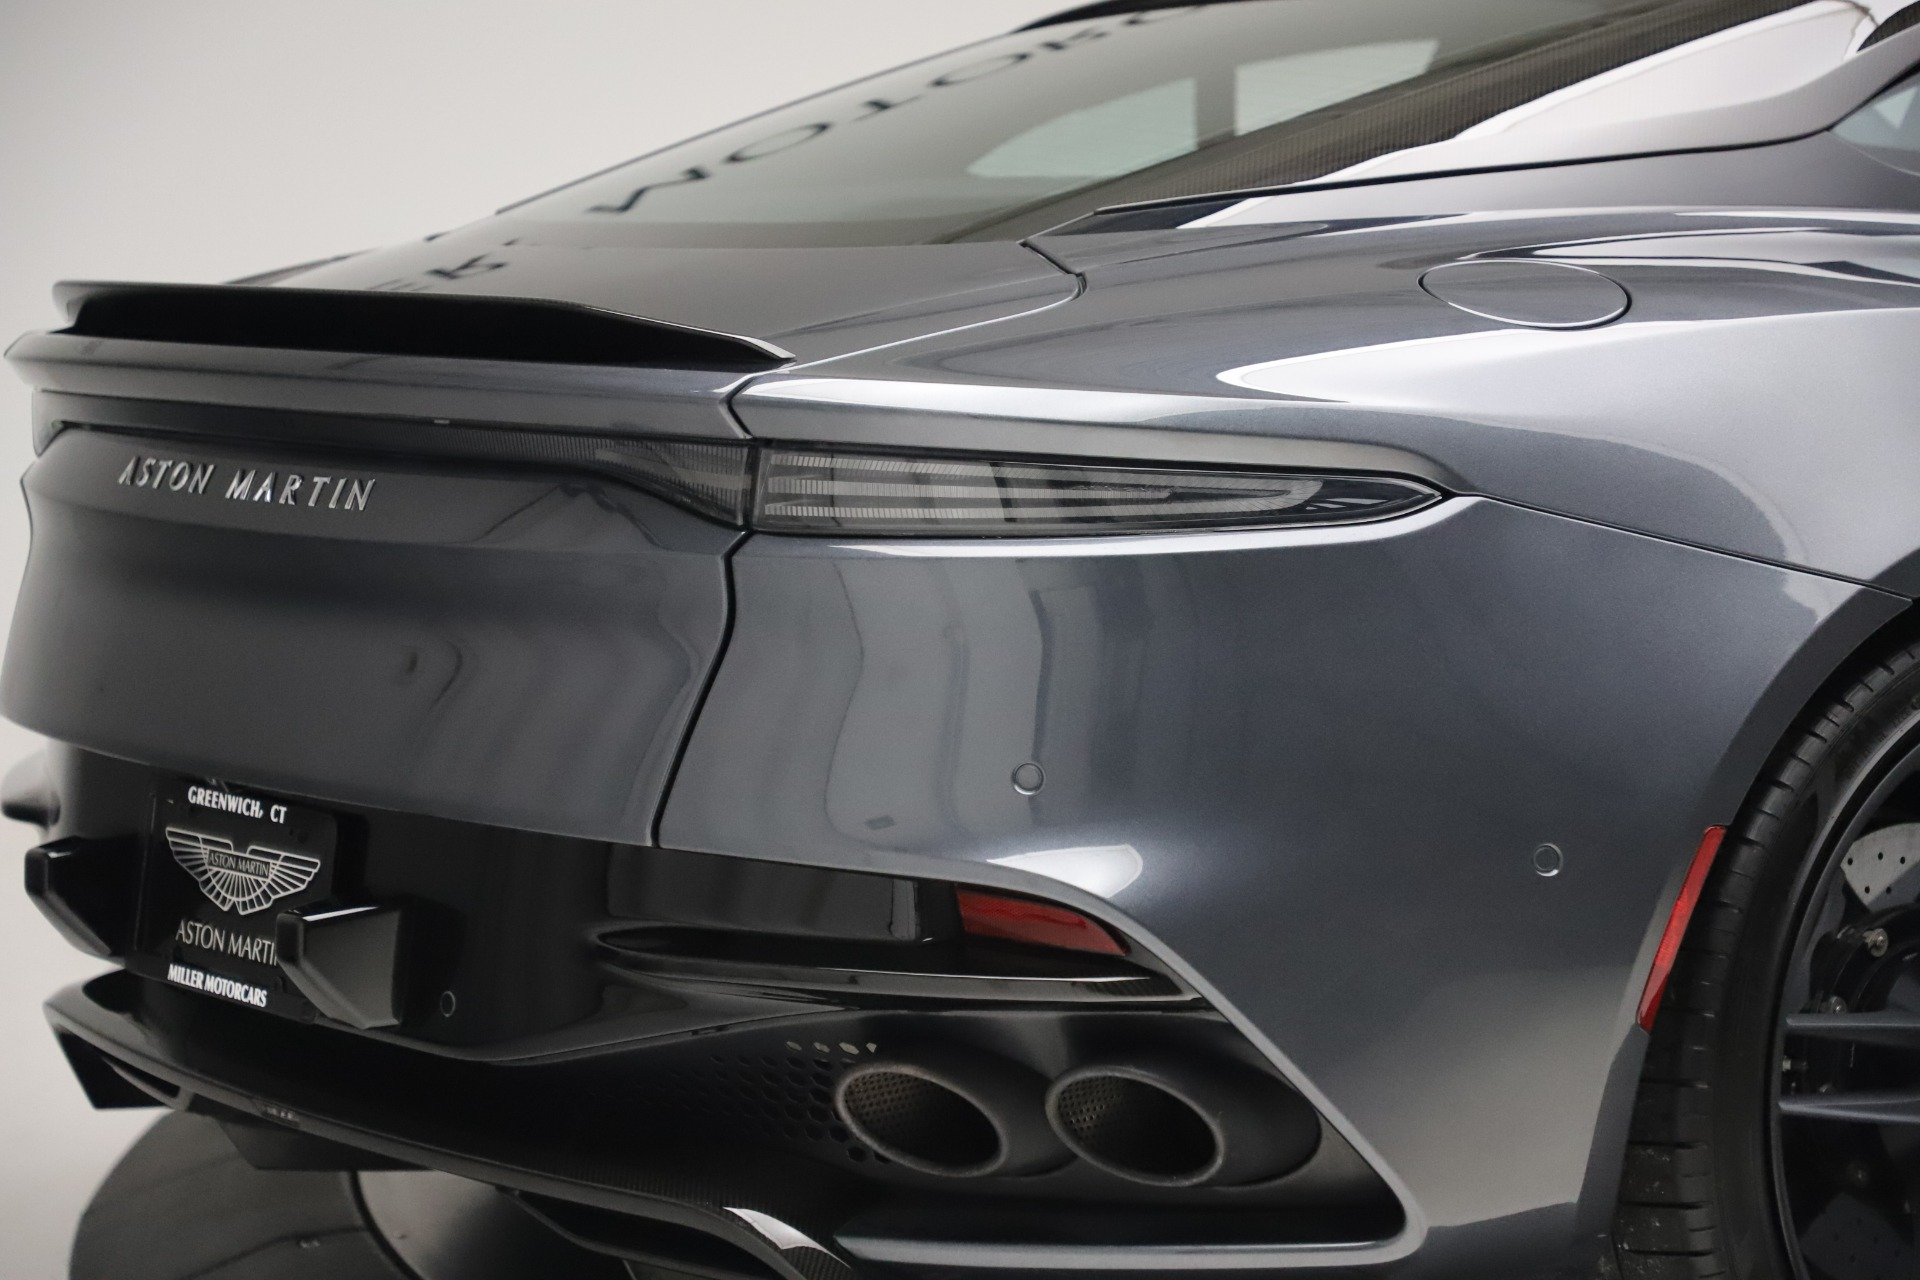 Used 2019 Aston Martin DBS Superleggera For Sale In Greenwich, CT 3570_p31